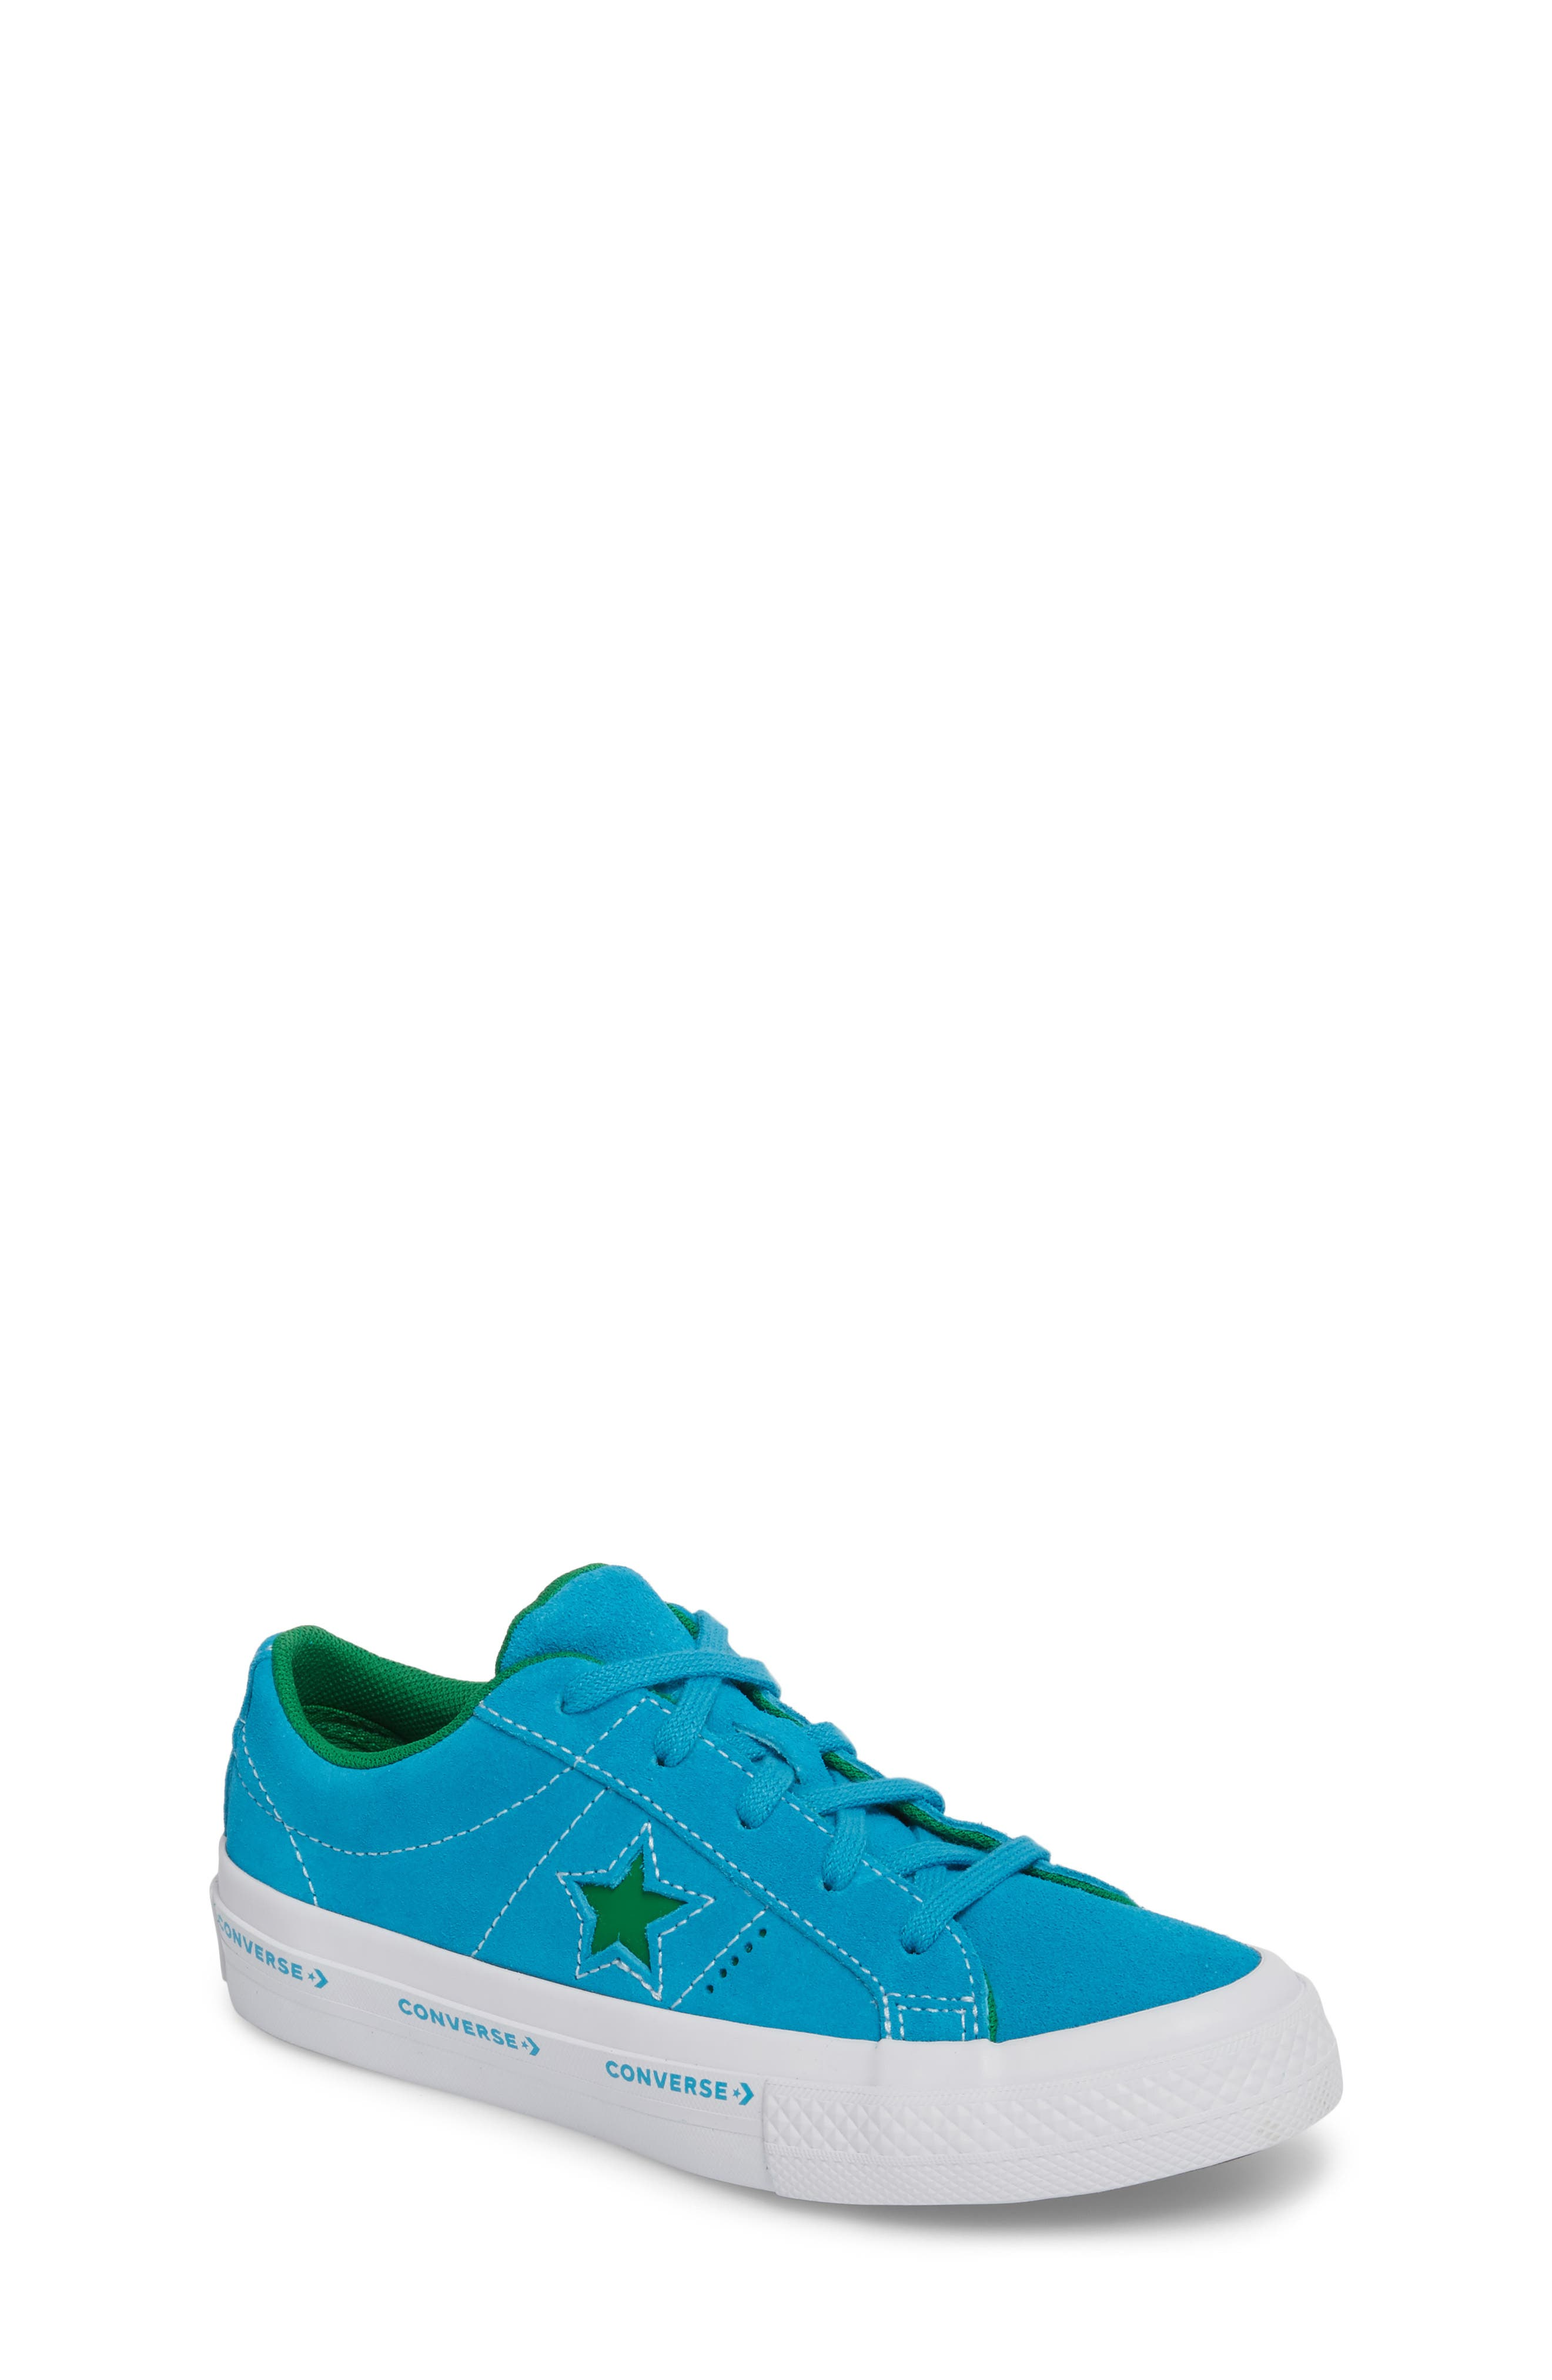 Chuck Taylor<sup>®</sup> All Star<sup>®</sup> One Star Leather Platform Sneaker,                             Main thumbnail 1, color,                             486